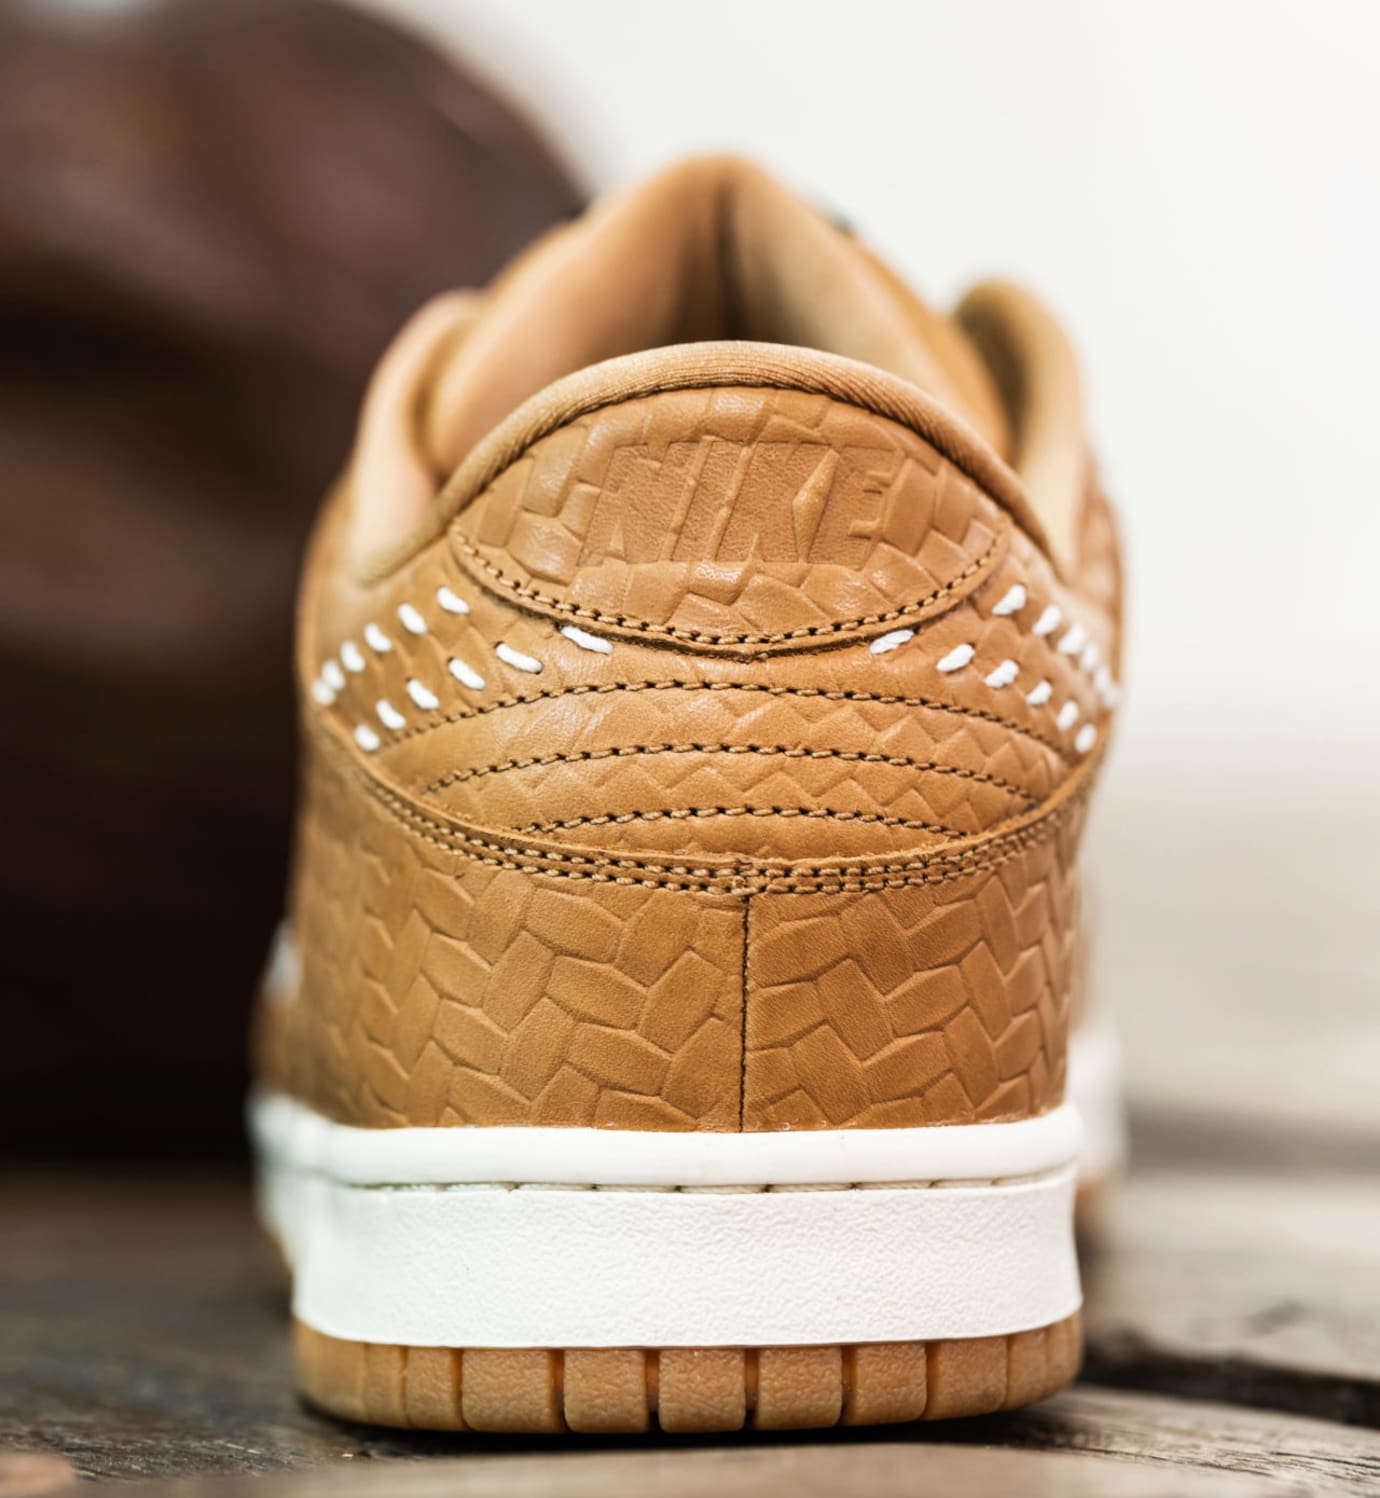 the latest 83bf9 349d6 ... coupon code for image via sneakers.fr nike dunk low prm qs paris  elemental gold